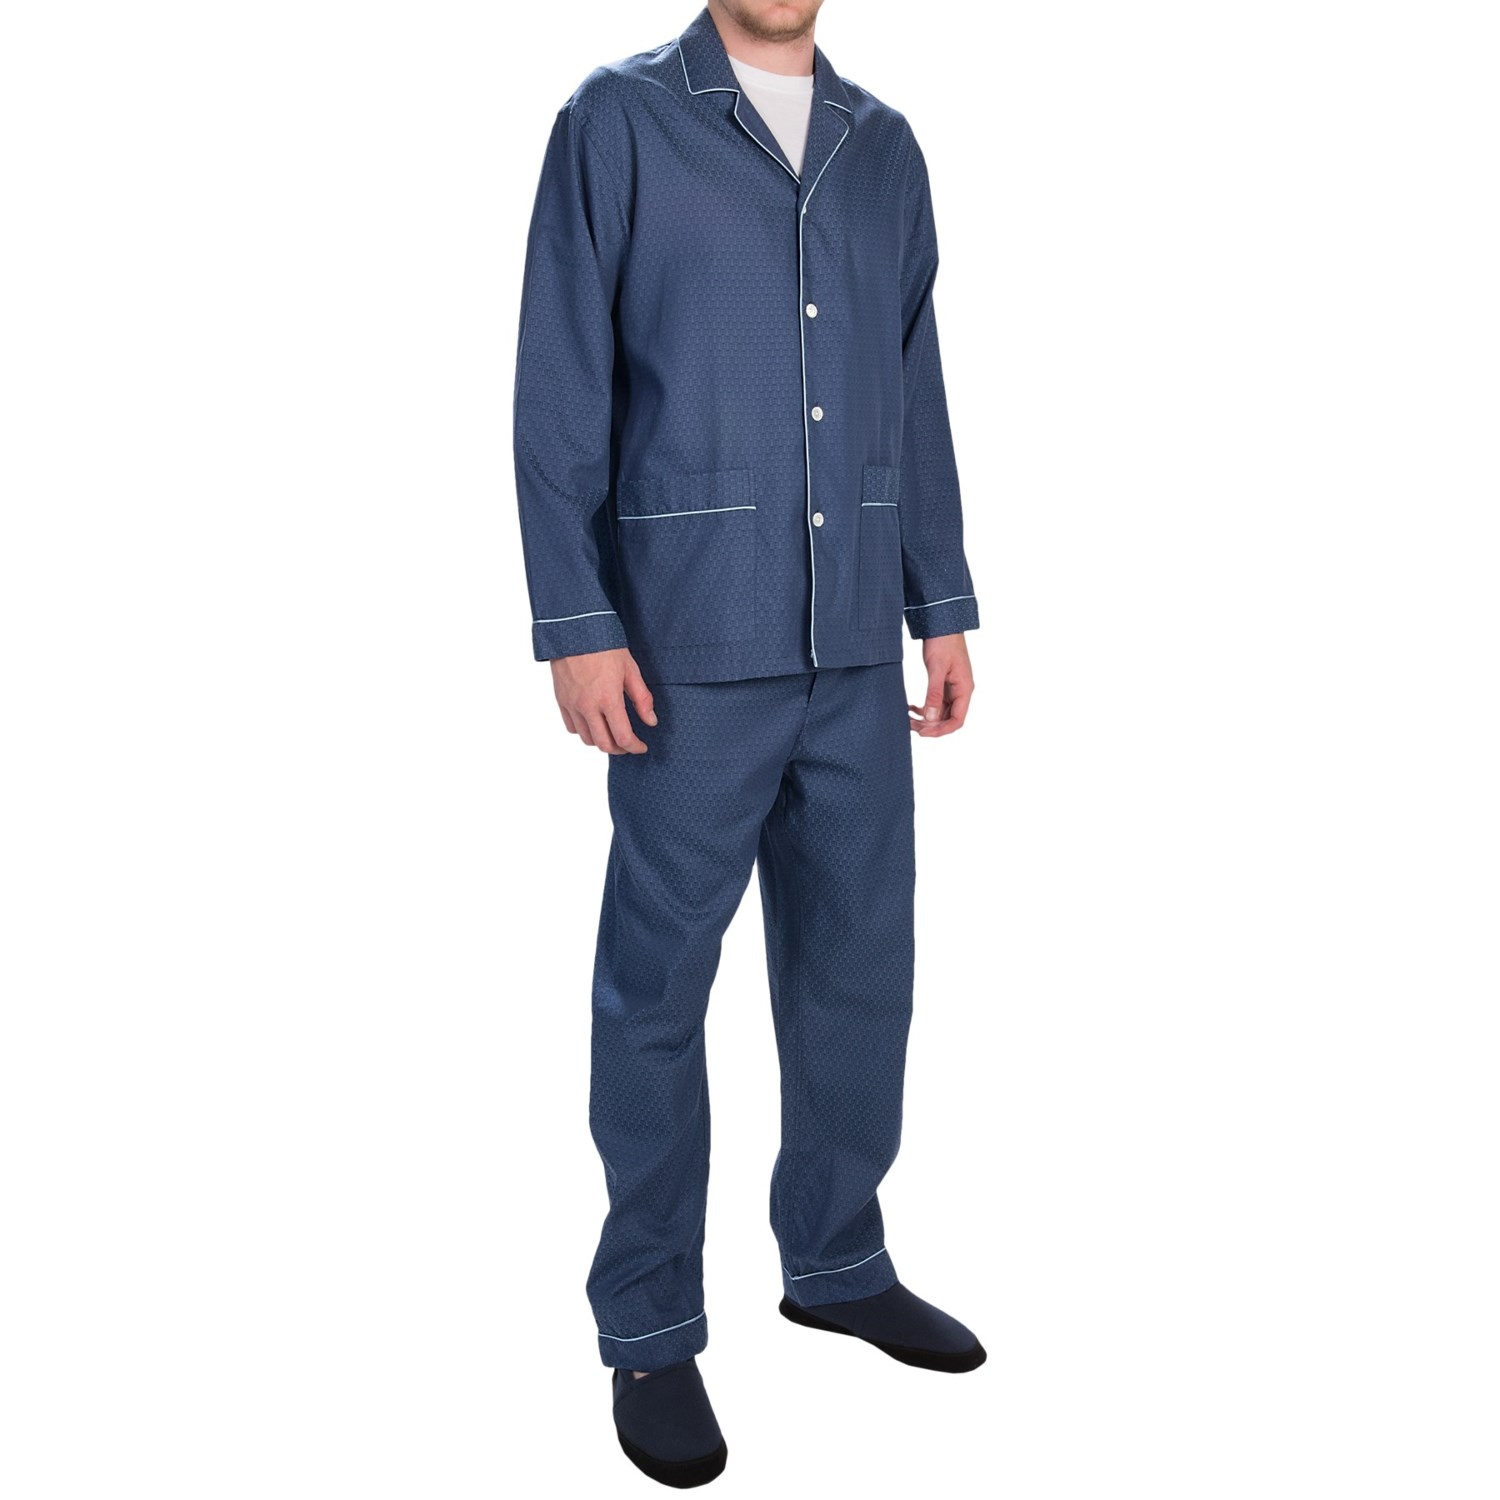 Lounge the day away in super comfortable organic nightgowns and pajamas. We have a large collection of quality organic sleepwear for women. Our clothing is created out of organic materials and without the use of pesticides.